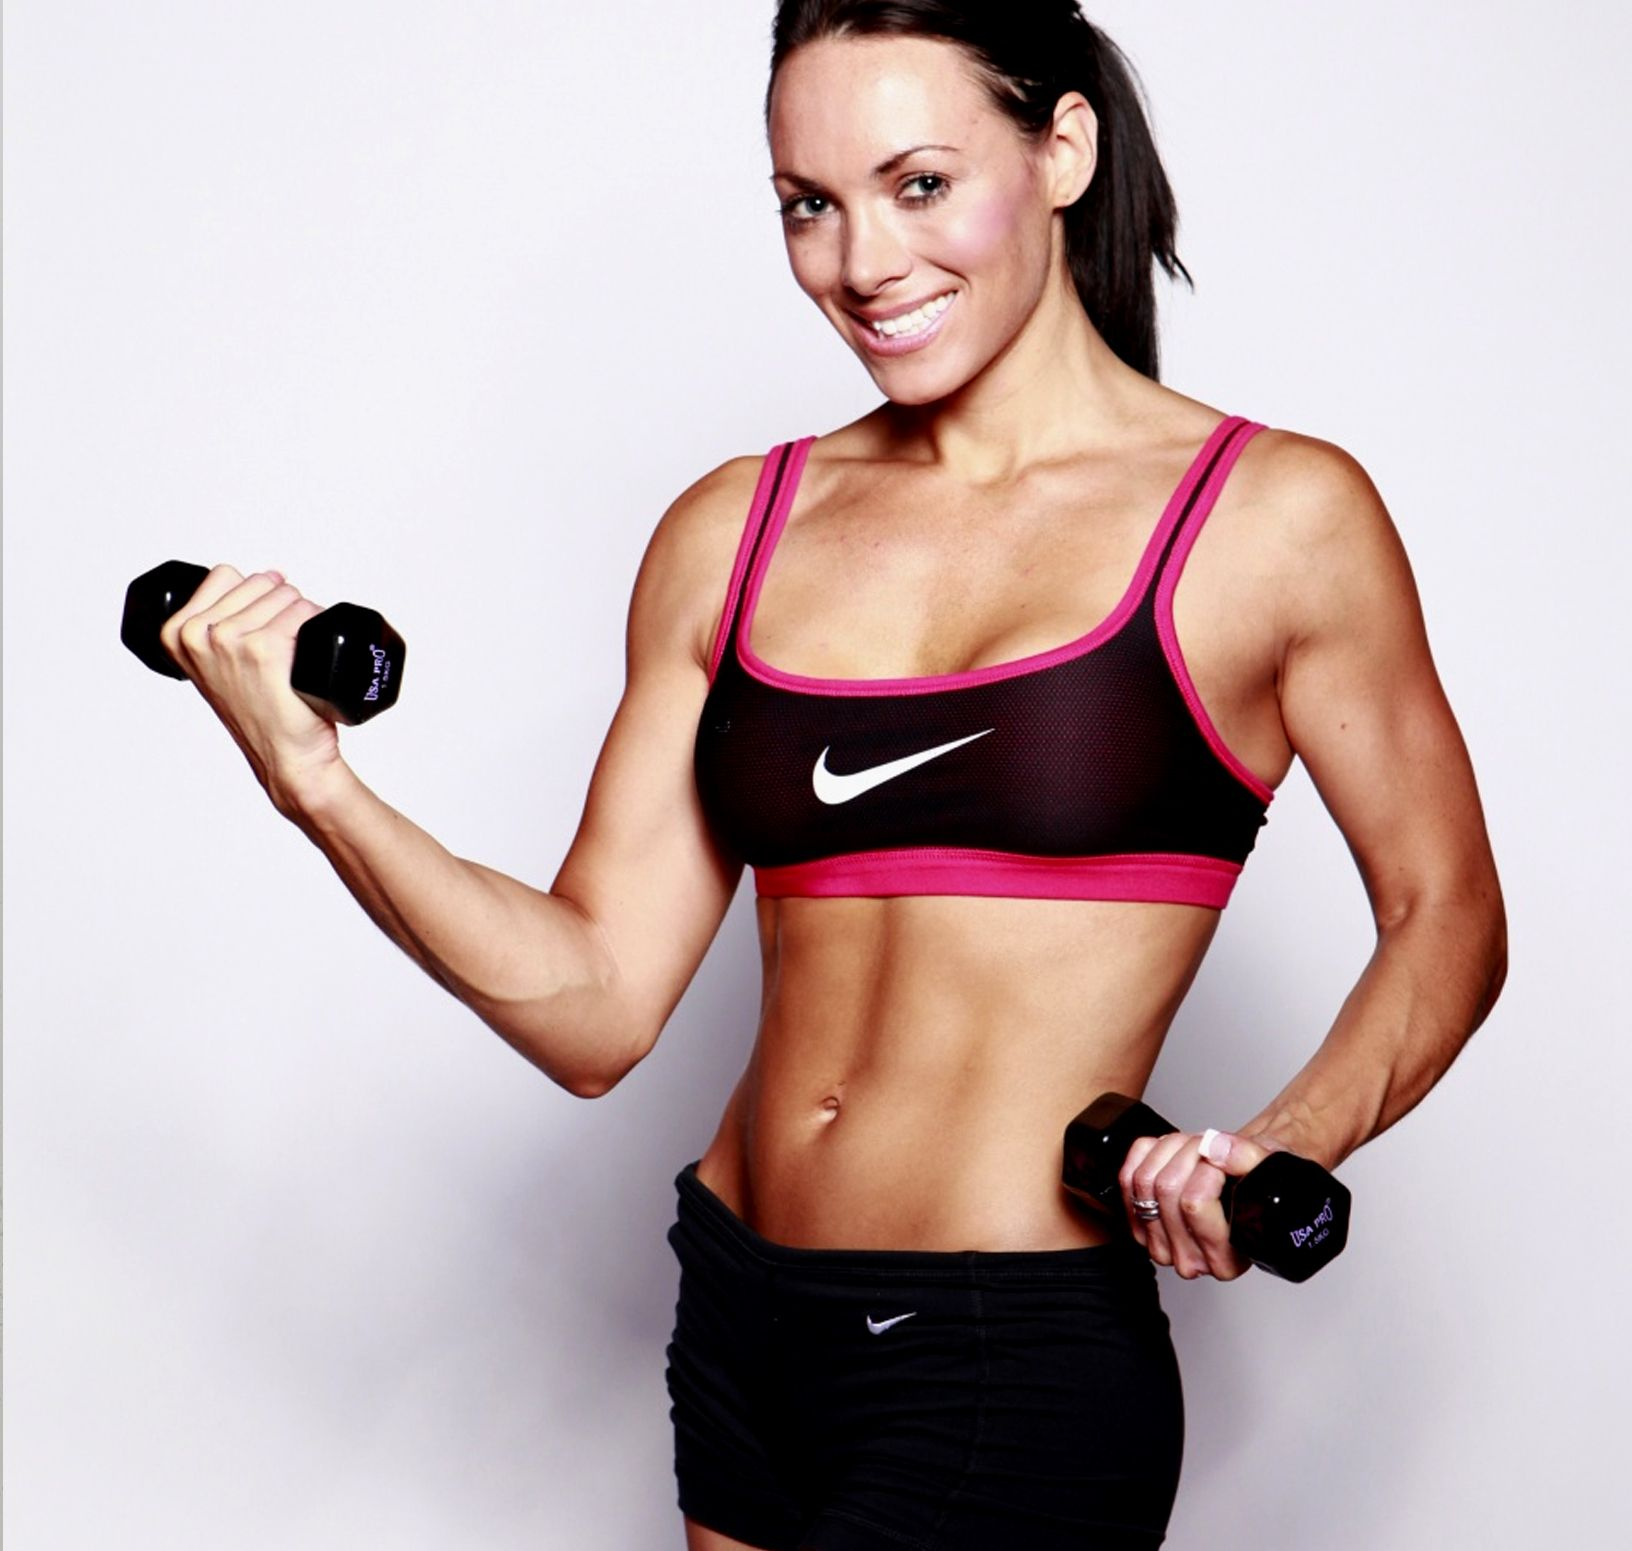 Beautiful Fit Women Bodies | Advice centre | Pumping Fit ...